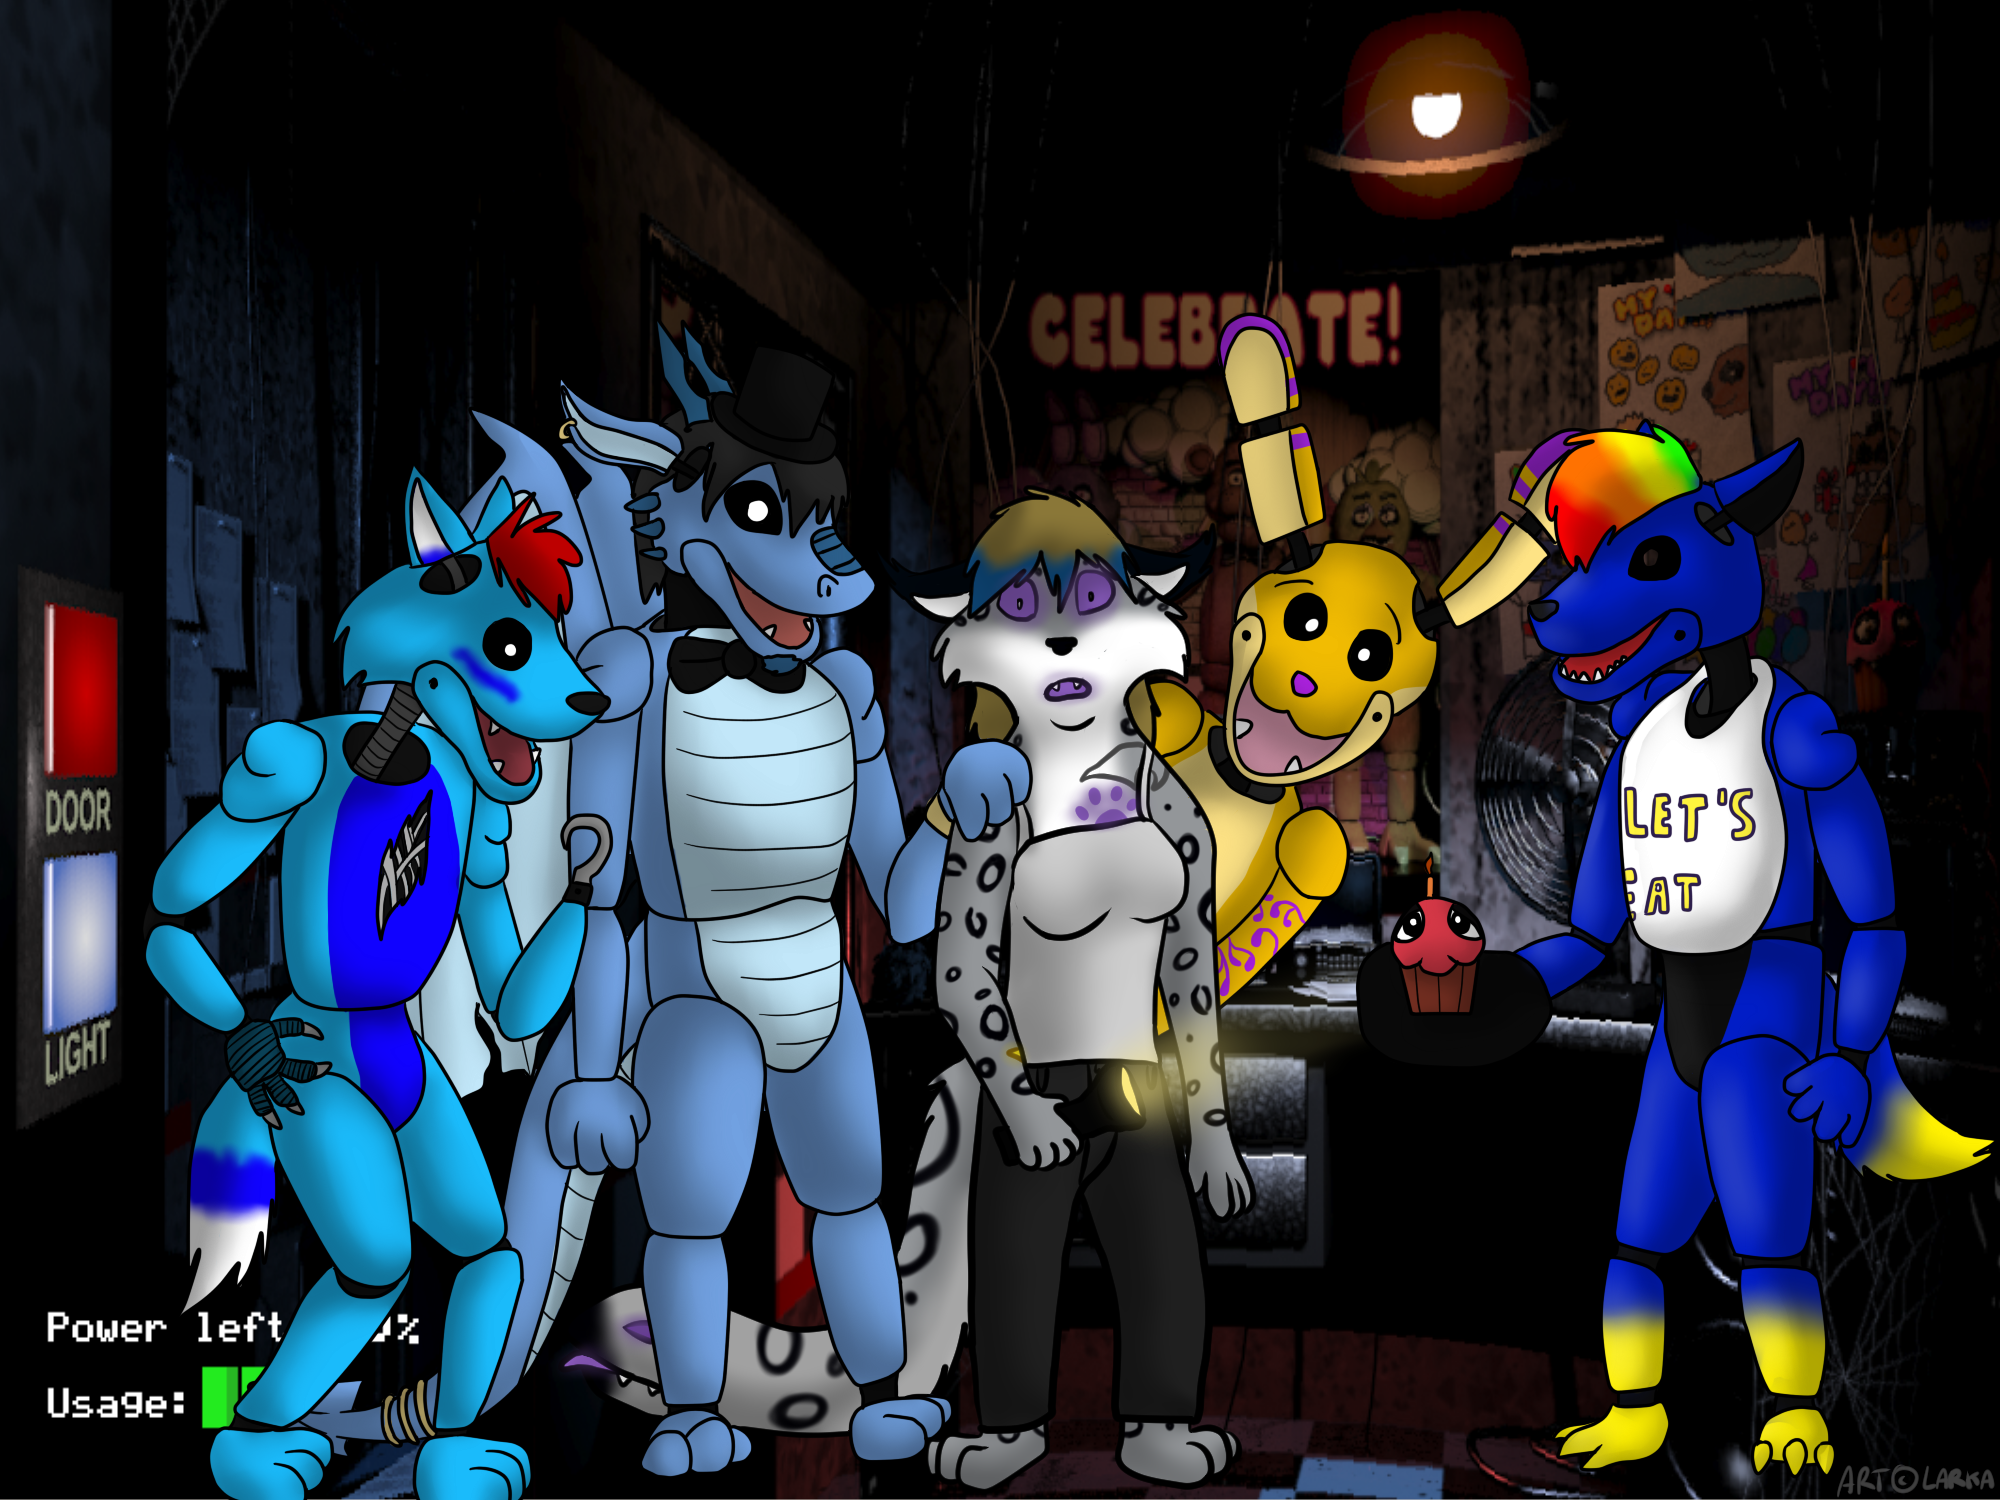 Five nights at freddy's 4 free download full version (pc).